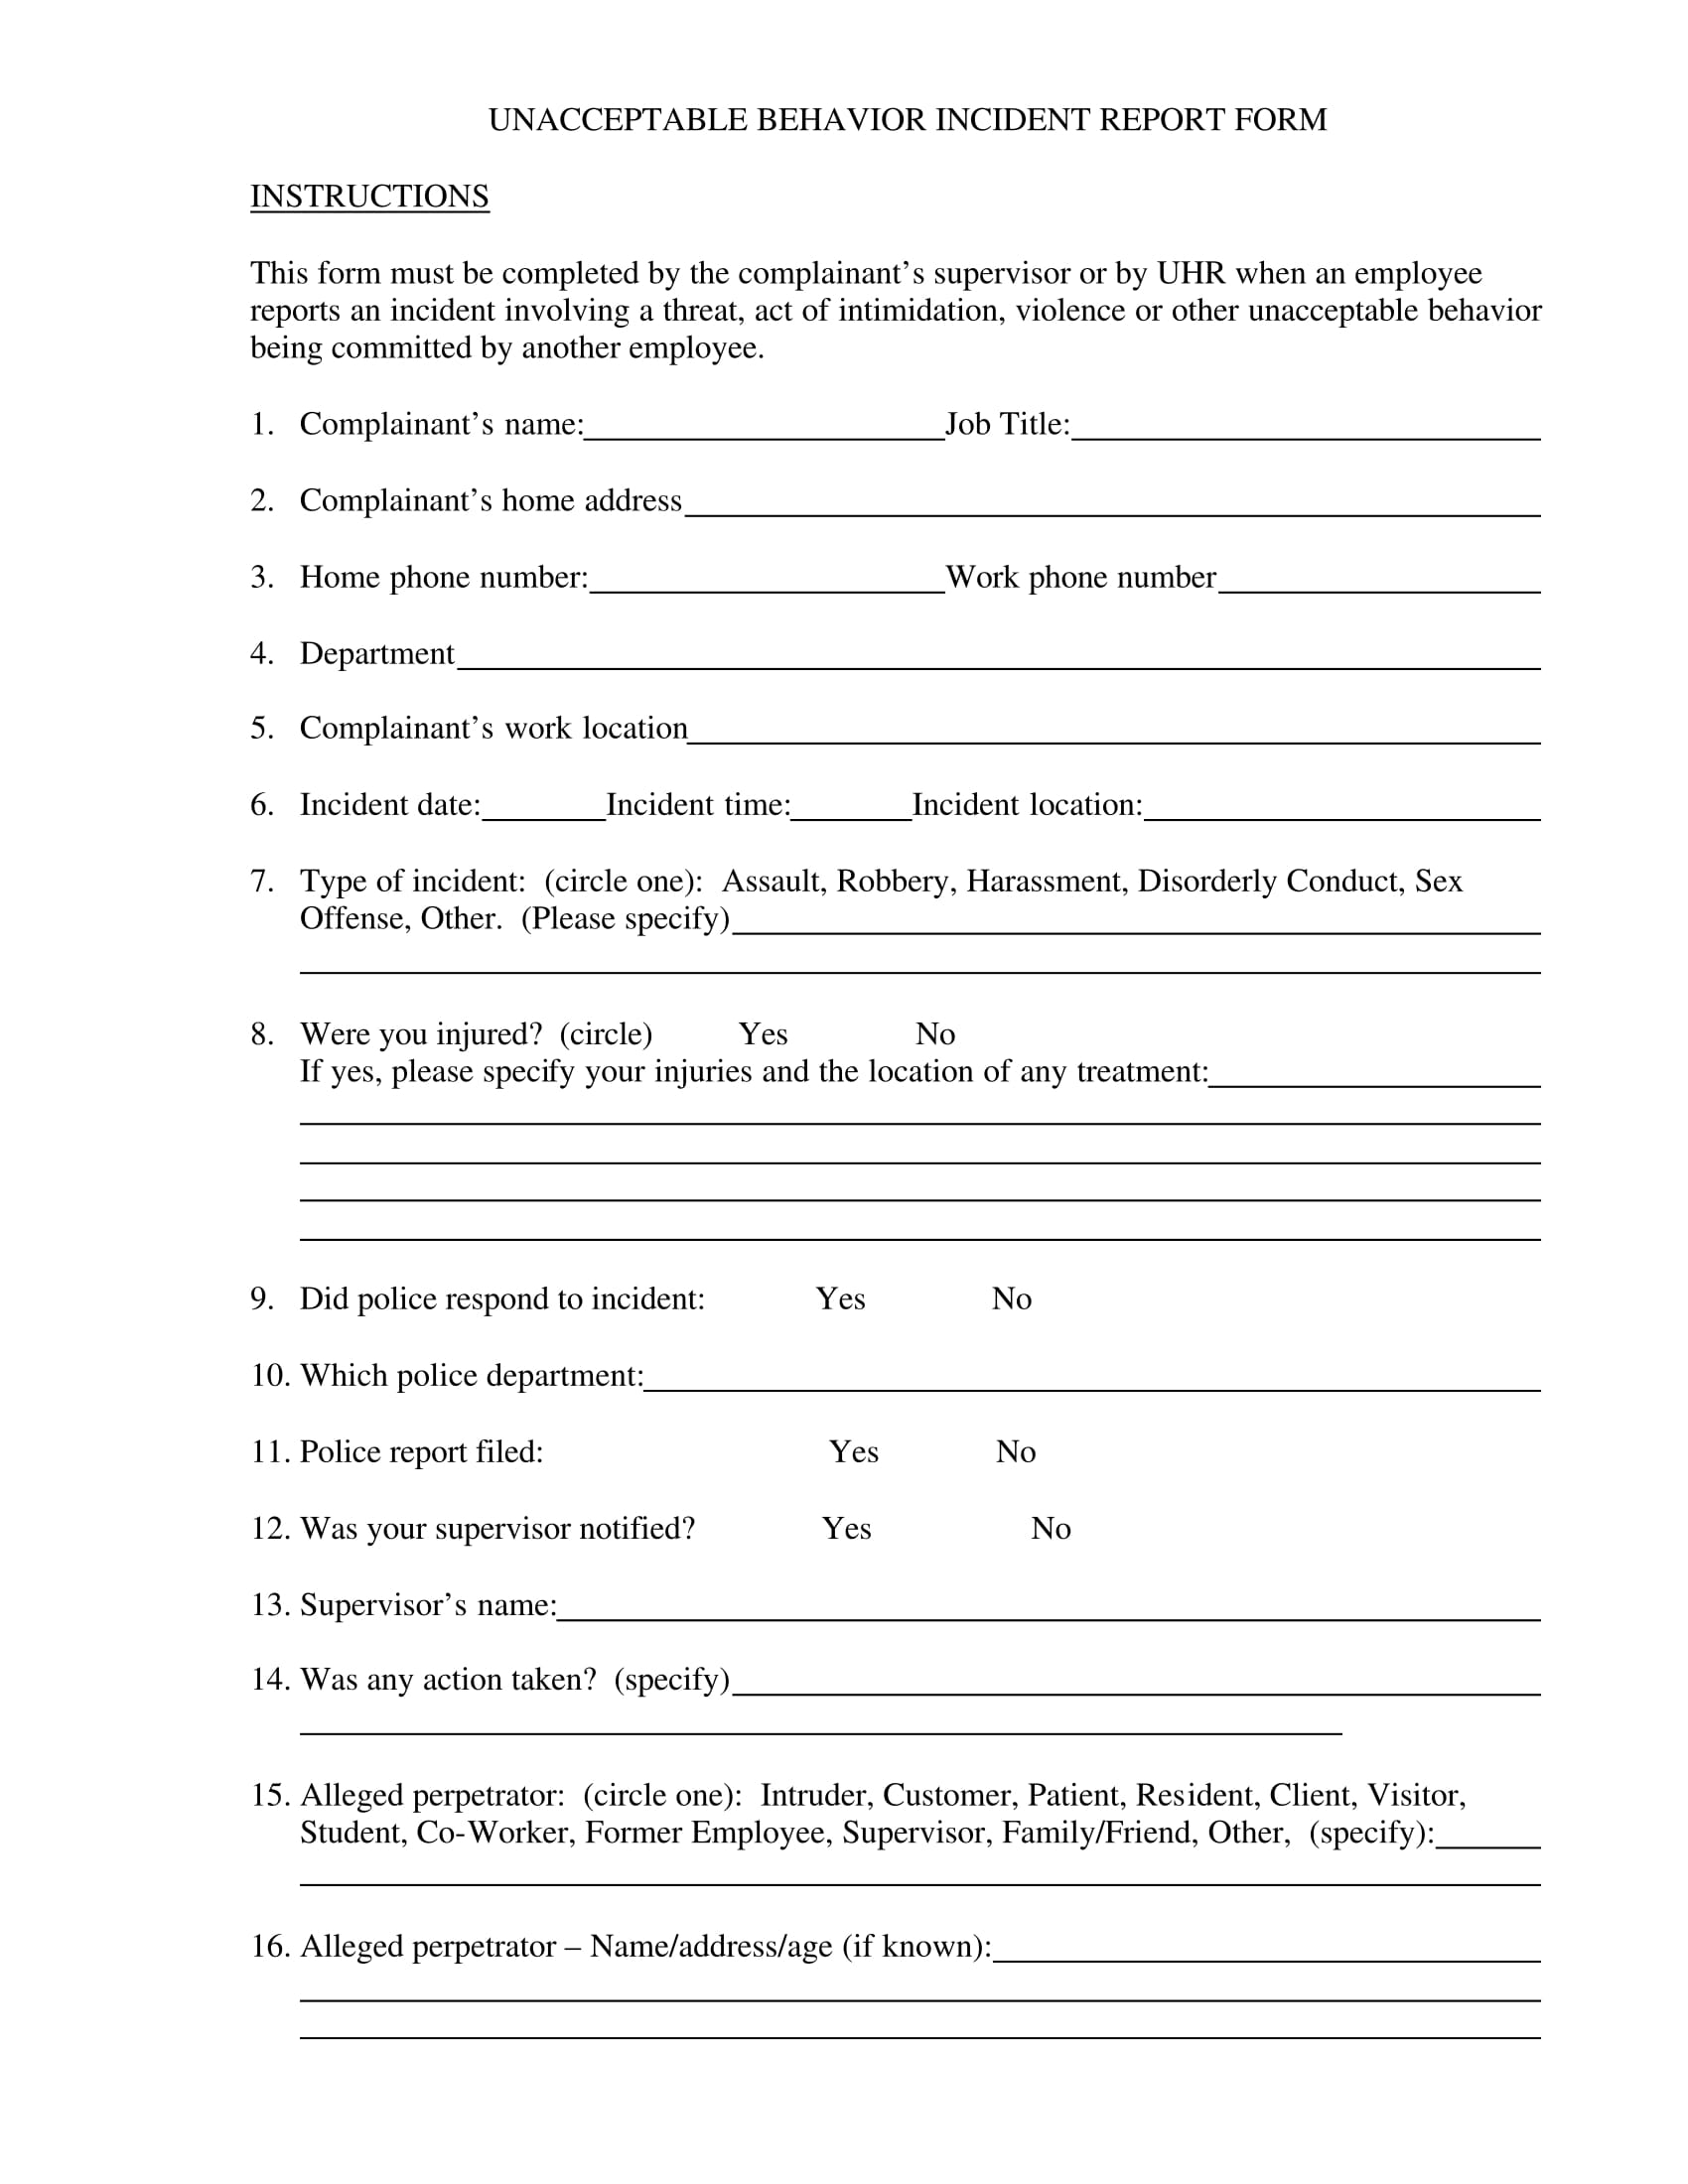 unacceptable behavior report form 1